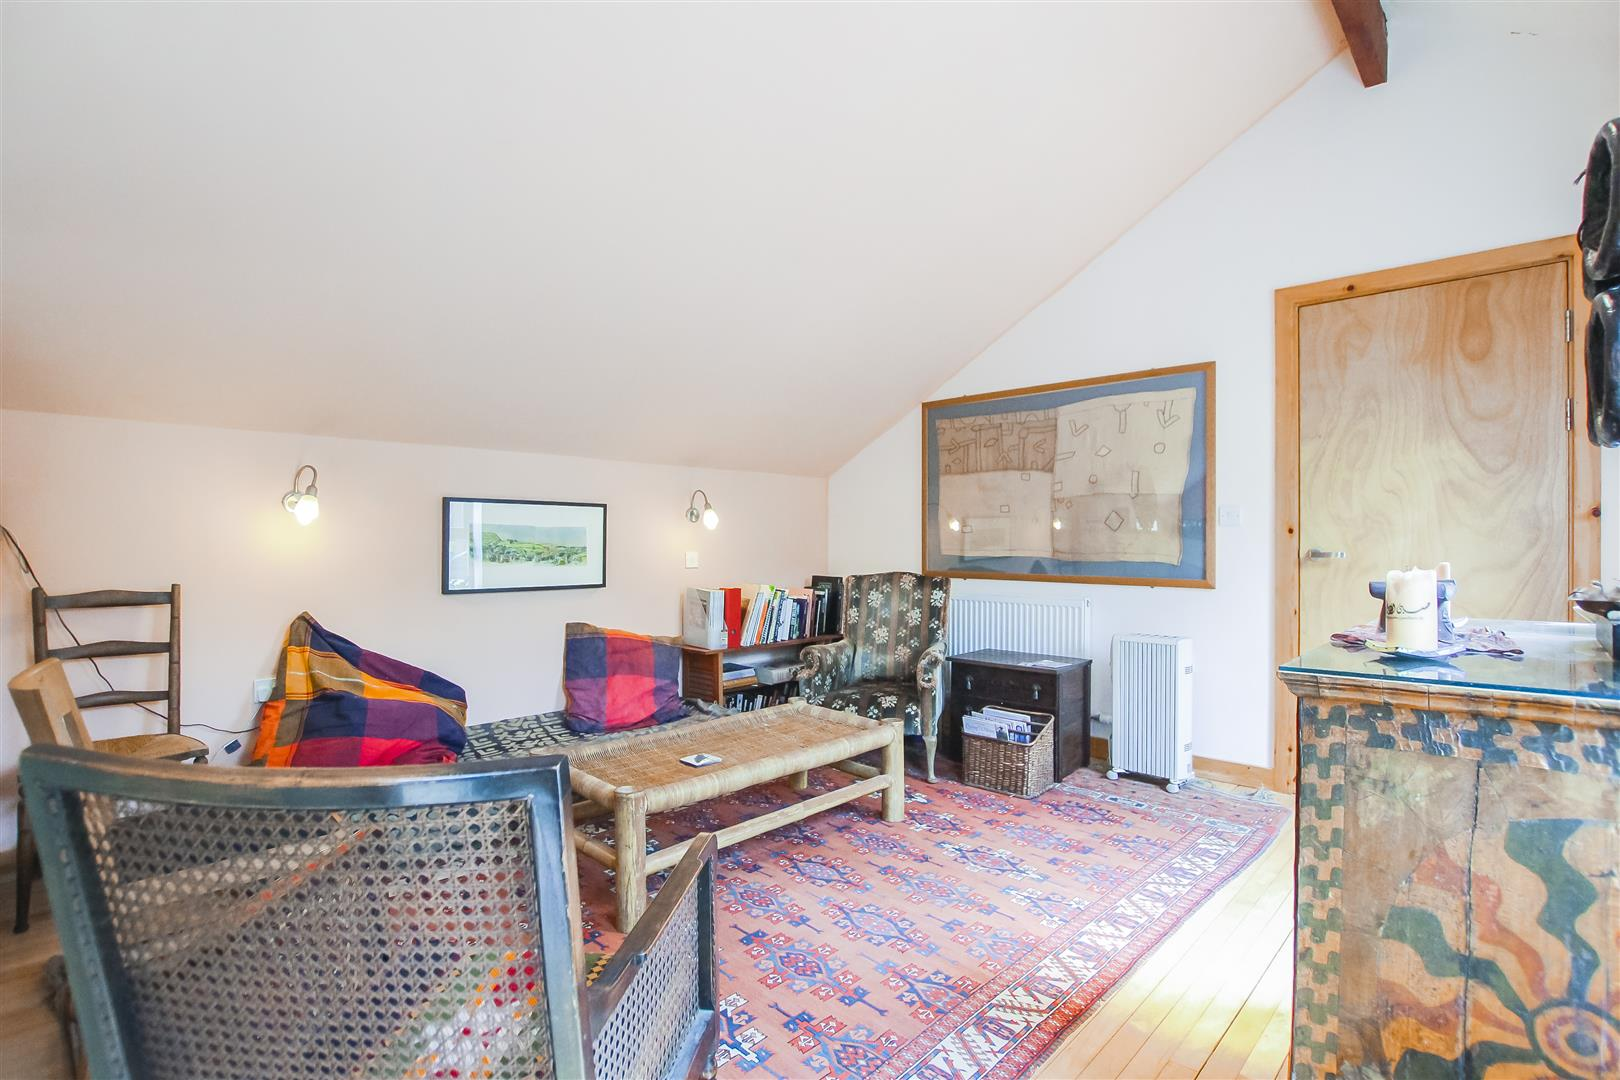 5 Bedroom Farmhouse For Sale - Image 65